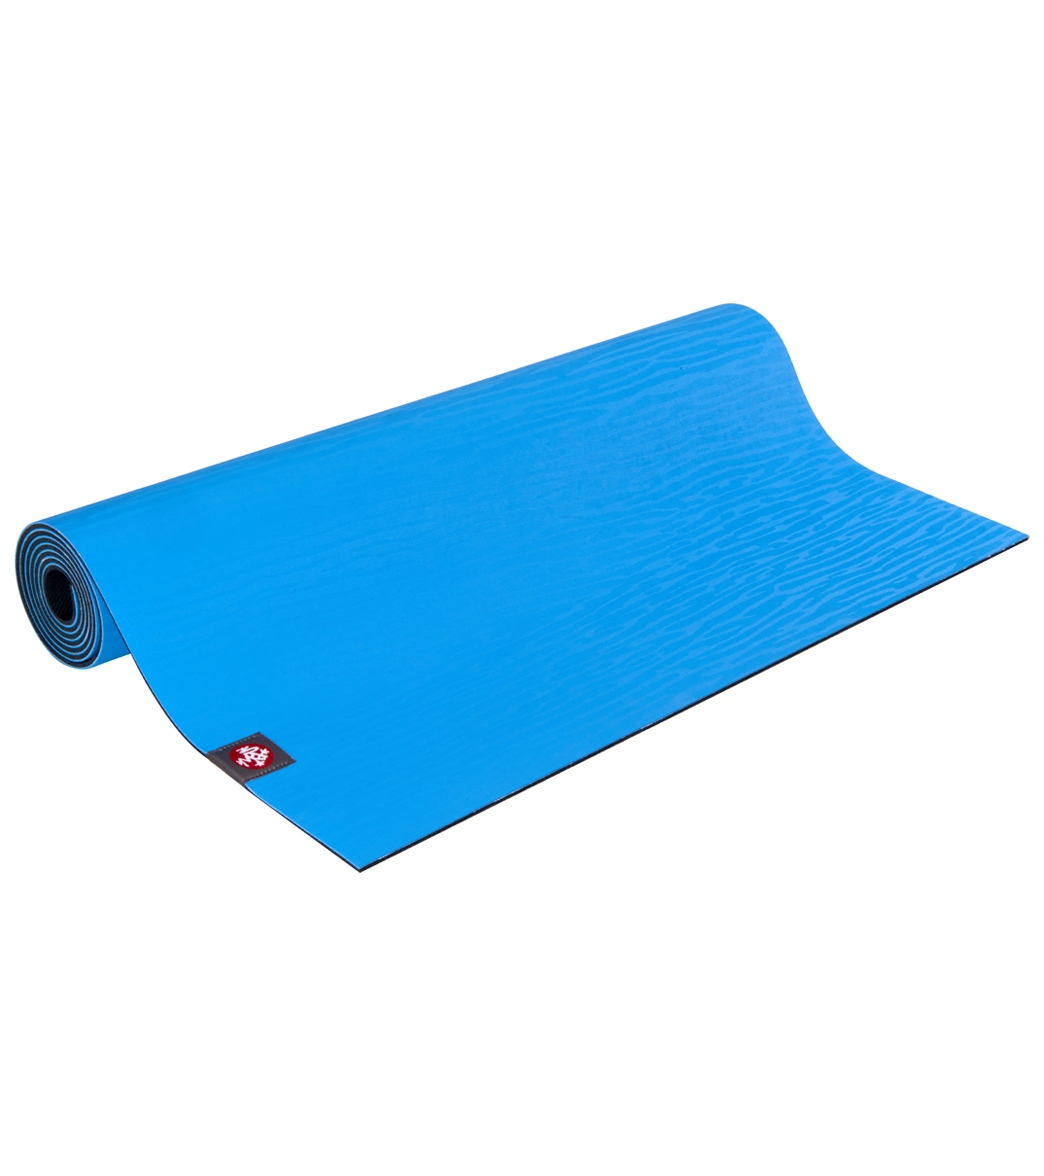 Image result for Manduka eKO Lite Yoga Mat 4mm